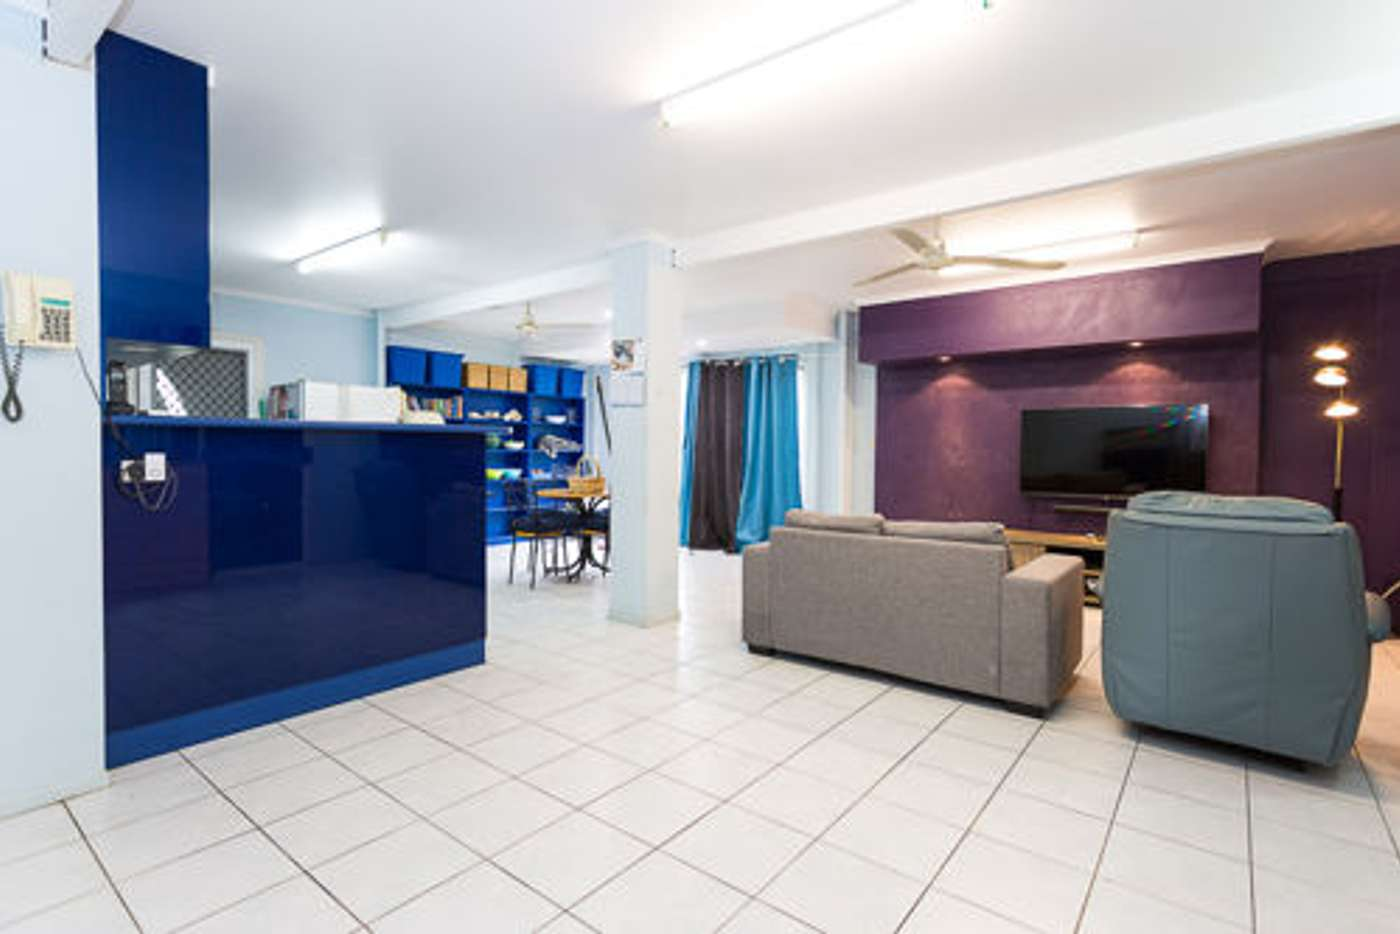 Main view of Homely house listing, 2/44 Arthur St, Mount Pleasant QLD 4740